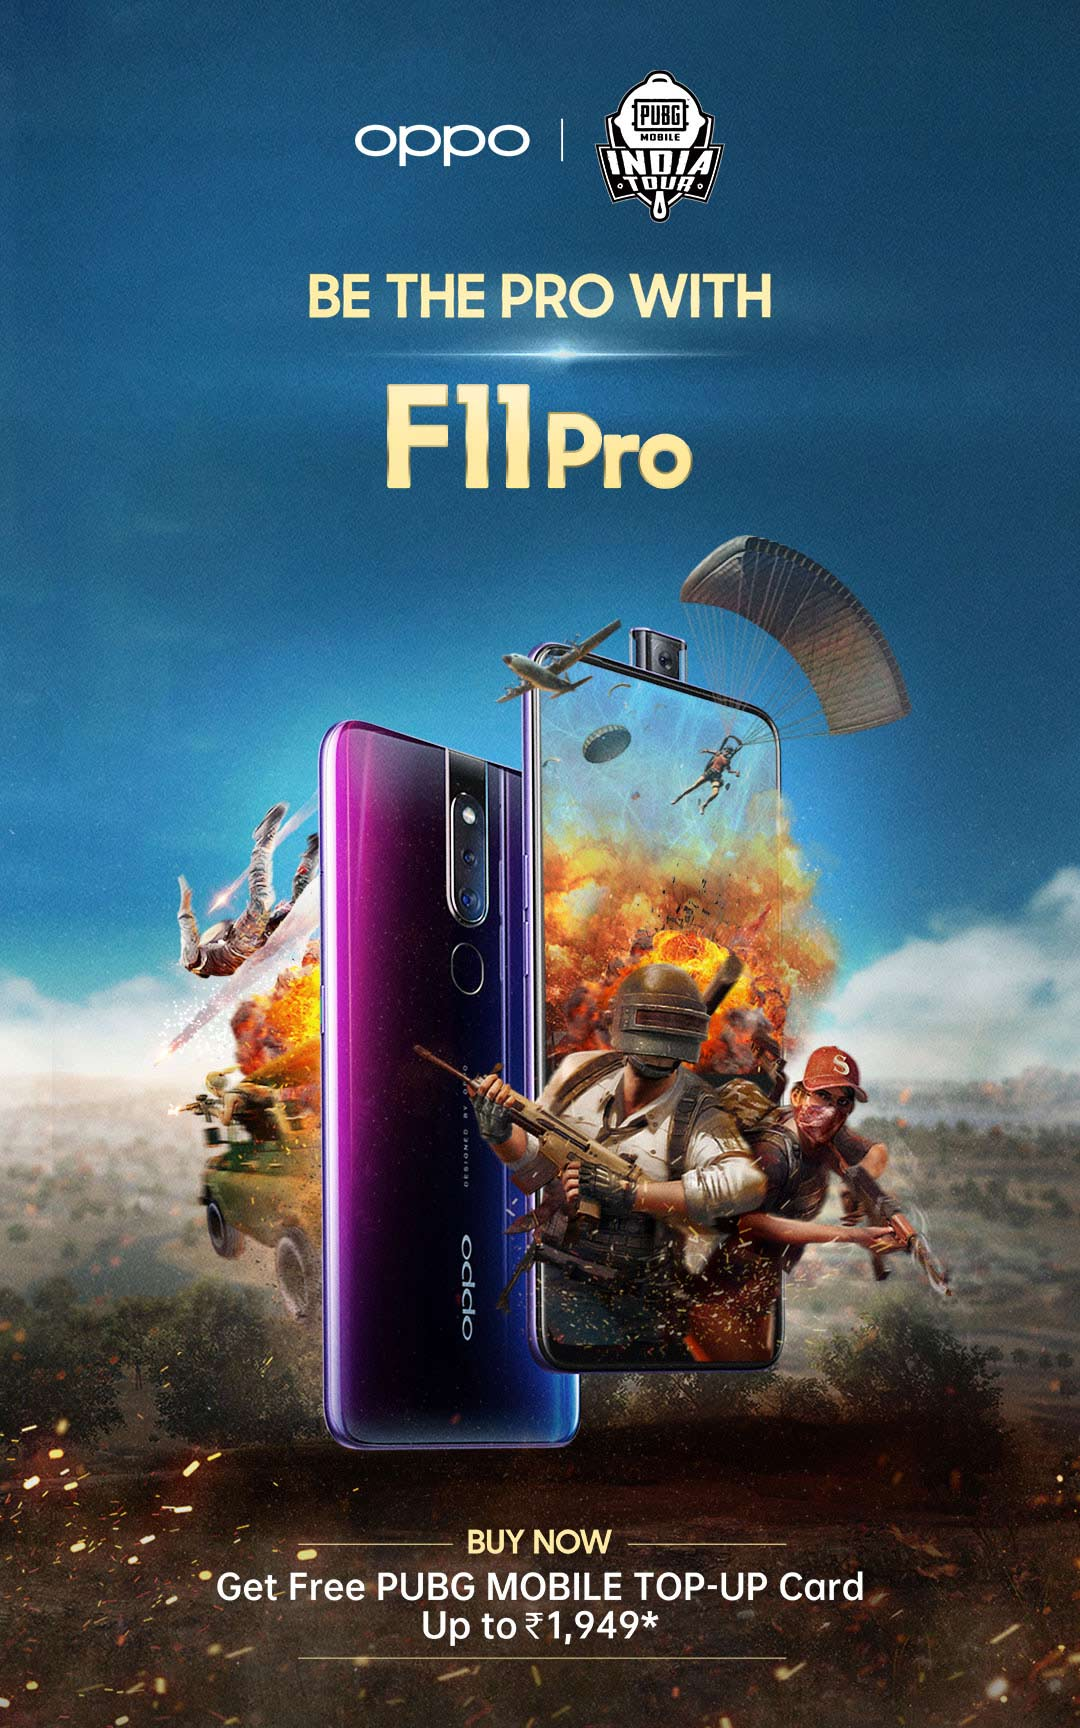 OPPO F11 Pro - 48 MP Camera | F11 Pro Features & Specs